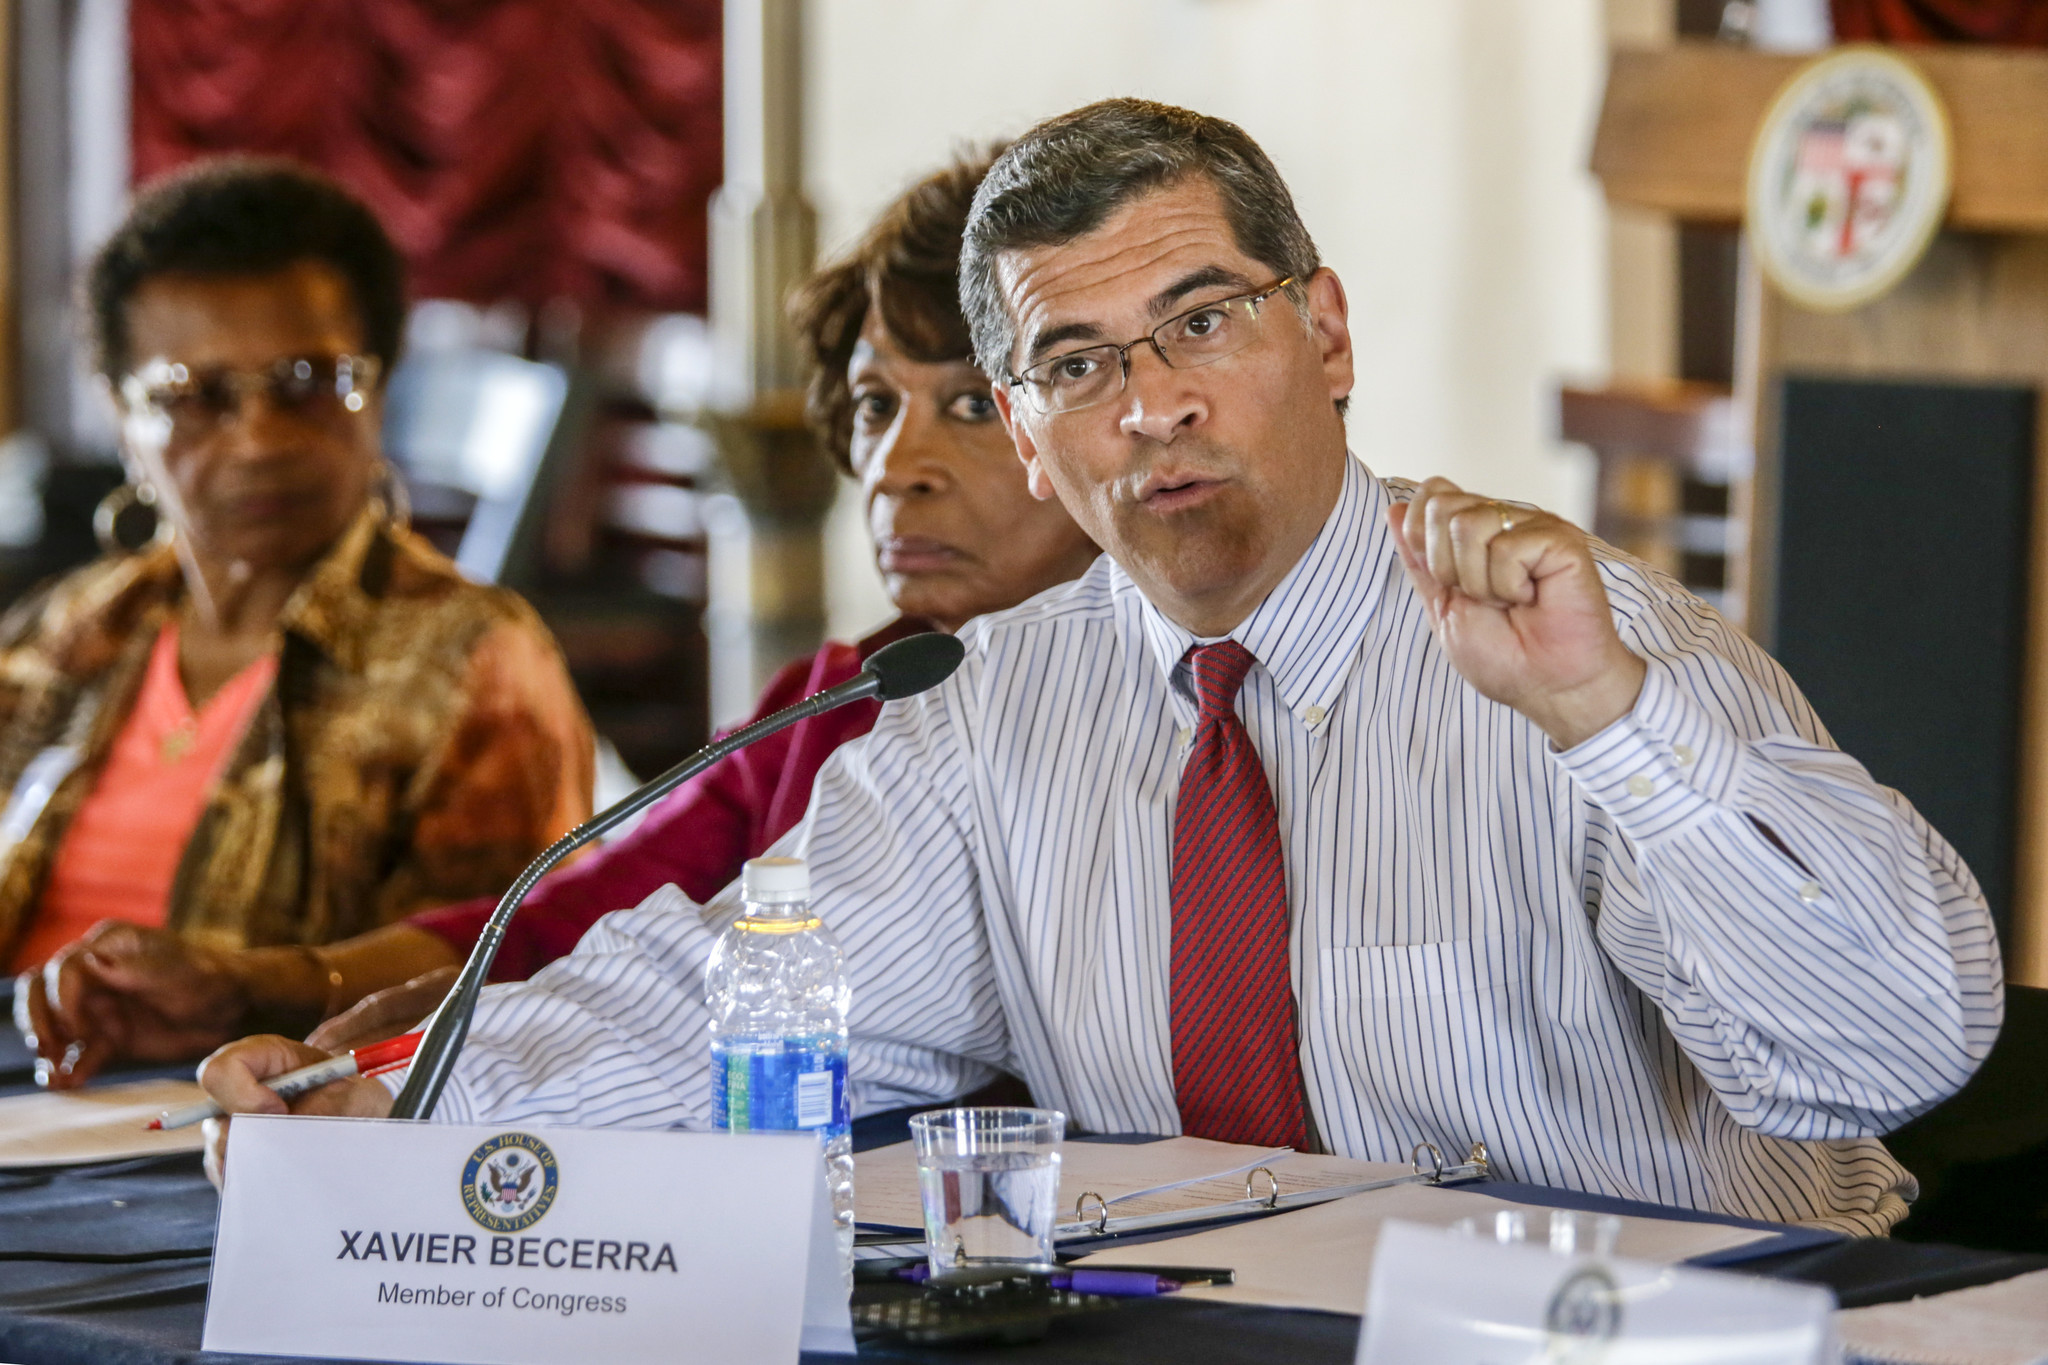 Rep. Xavier Becerra (D-Los Angeles), shown at a gun violence event in June, was selected by Gov. Jerry Brown to be California's next attorney general. (Irfan Khan / Los Angeles Times)